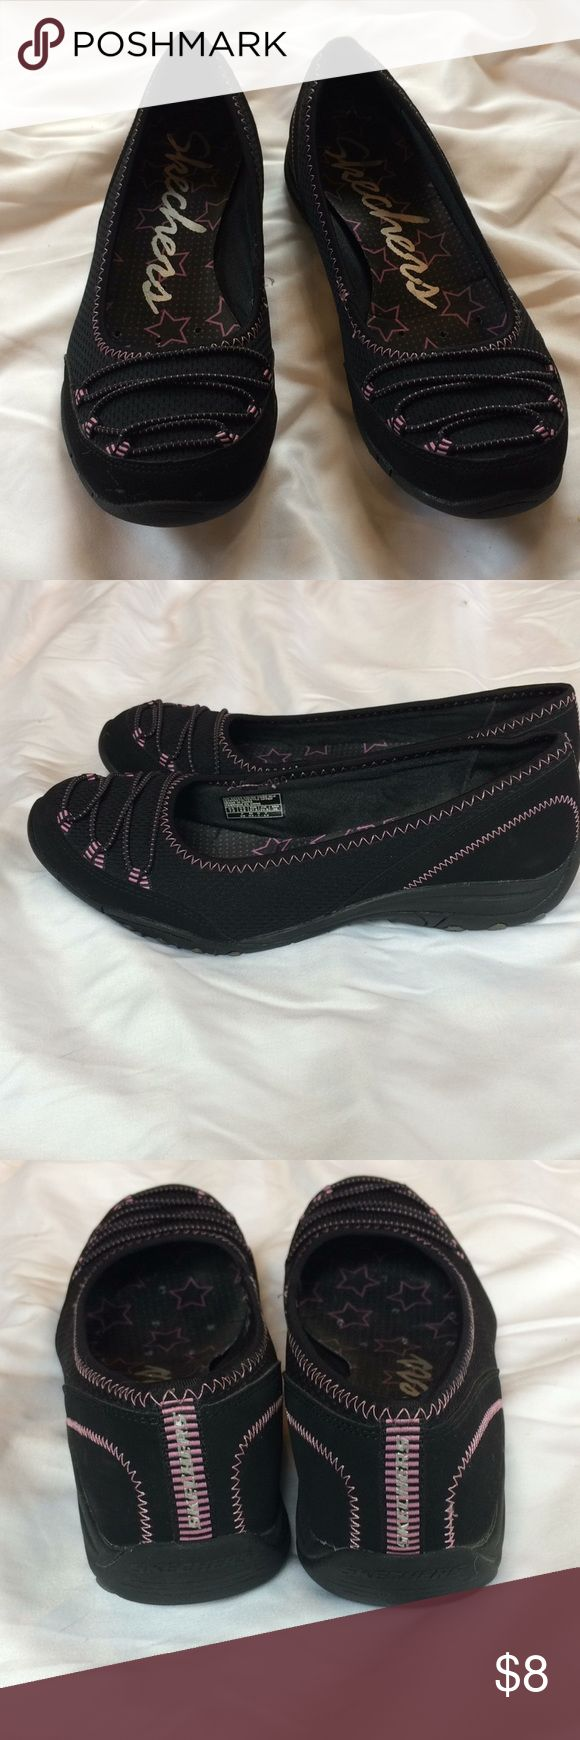 Sketchers Slip On Flat Brand new! Sketchers sneaker flat features breathable upper sporty design with pink cross ties. Foot pad is cushioned. Rubber sole prevents slipping Sketchers Shoes Flats & Loafers